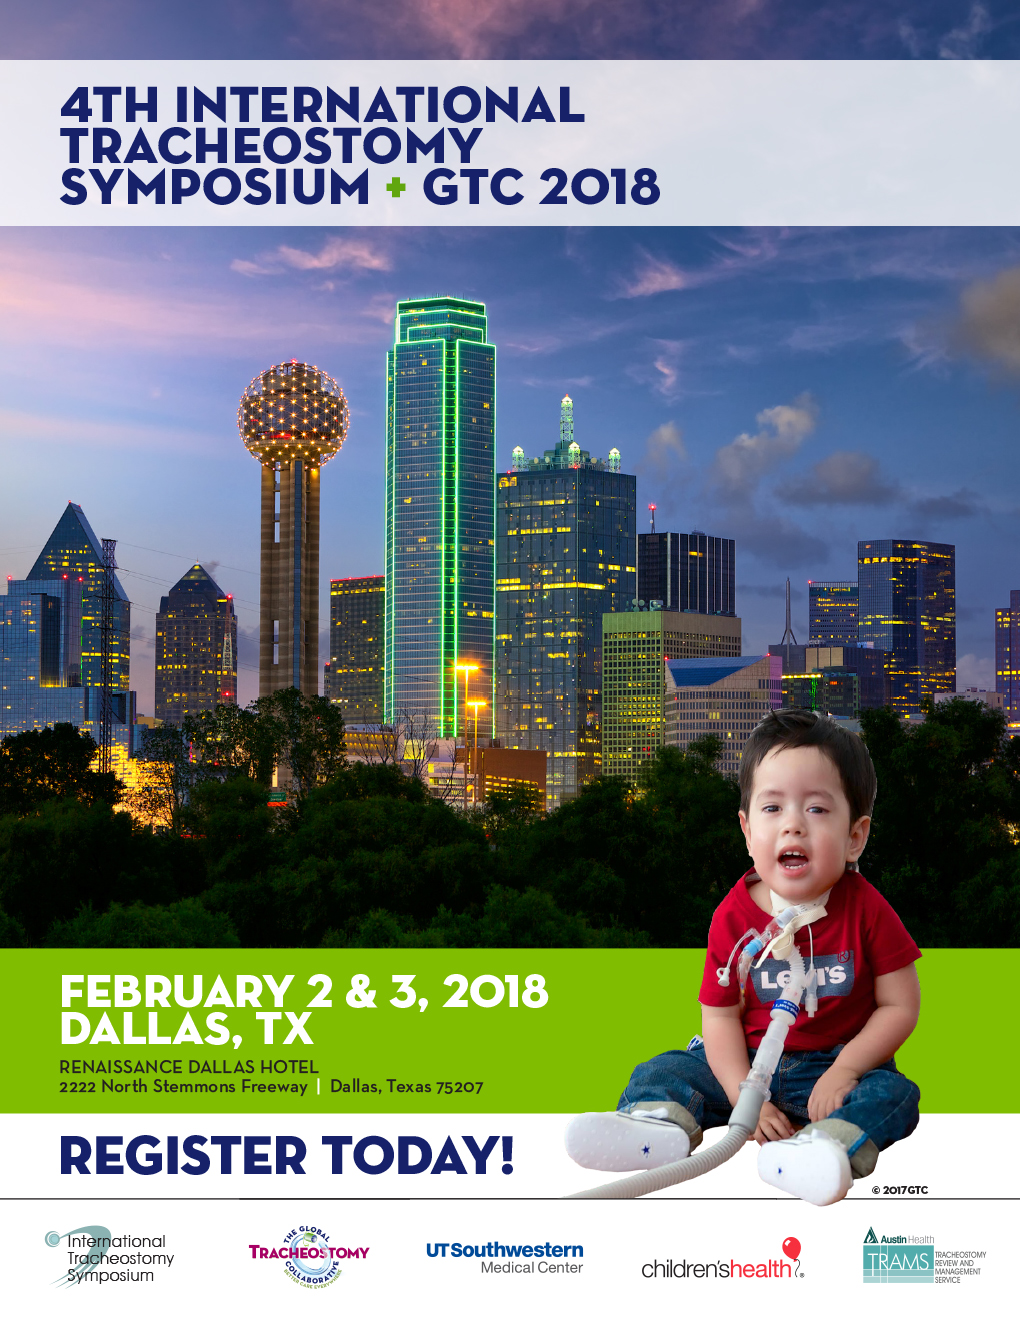 4th International Tracheostomy Symposium - GTC 2018 (RP1802A